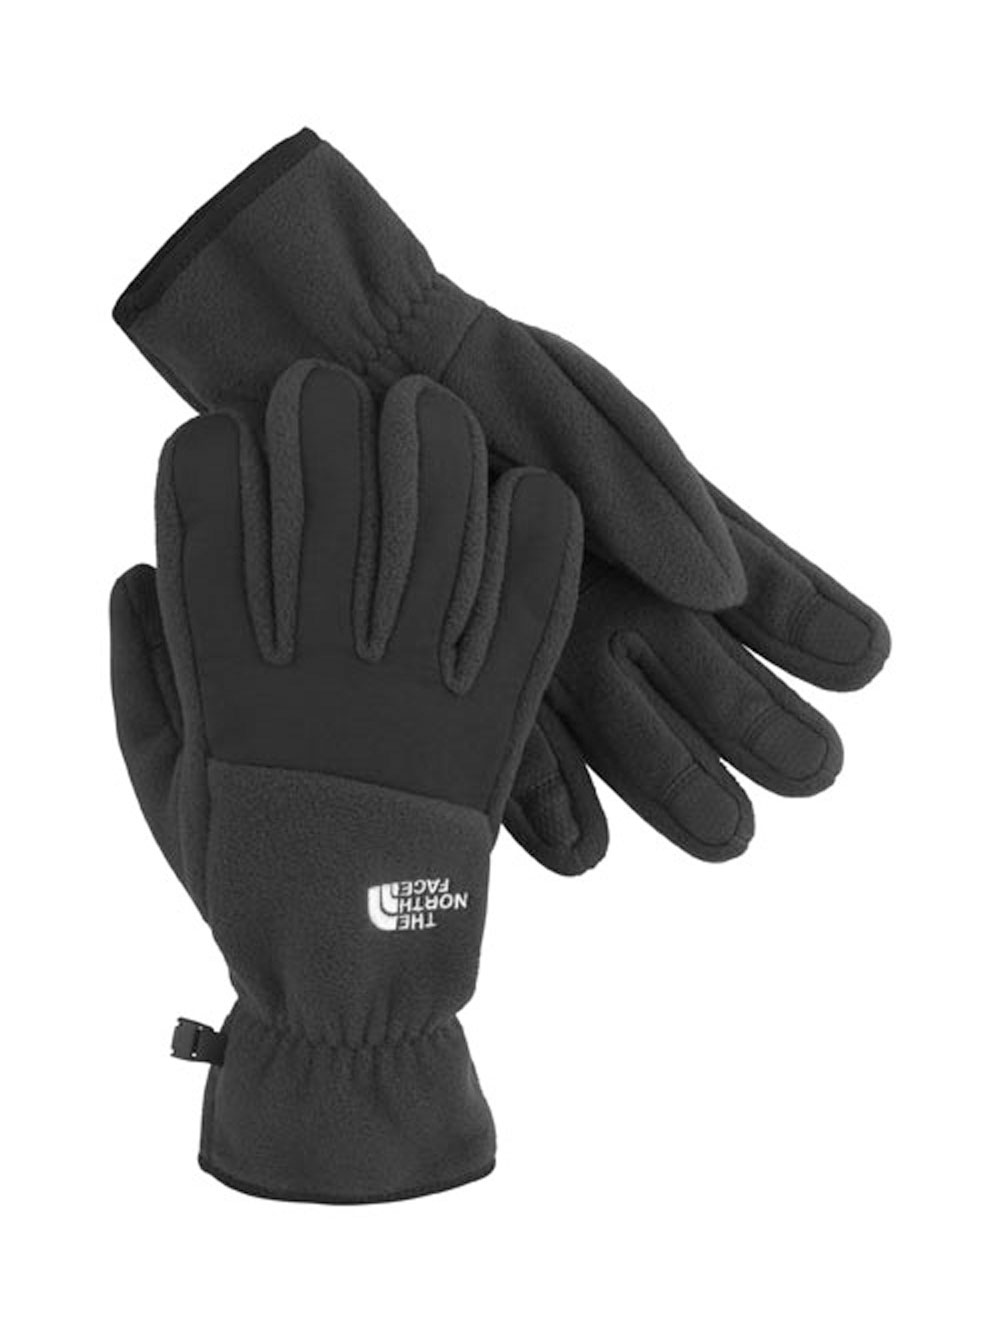 The North Face Men's Denali Glove (Sizes S - XL) - black, l